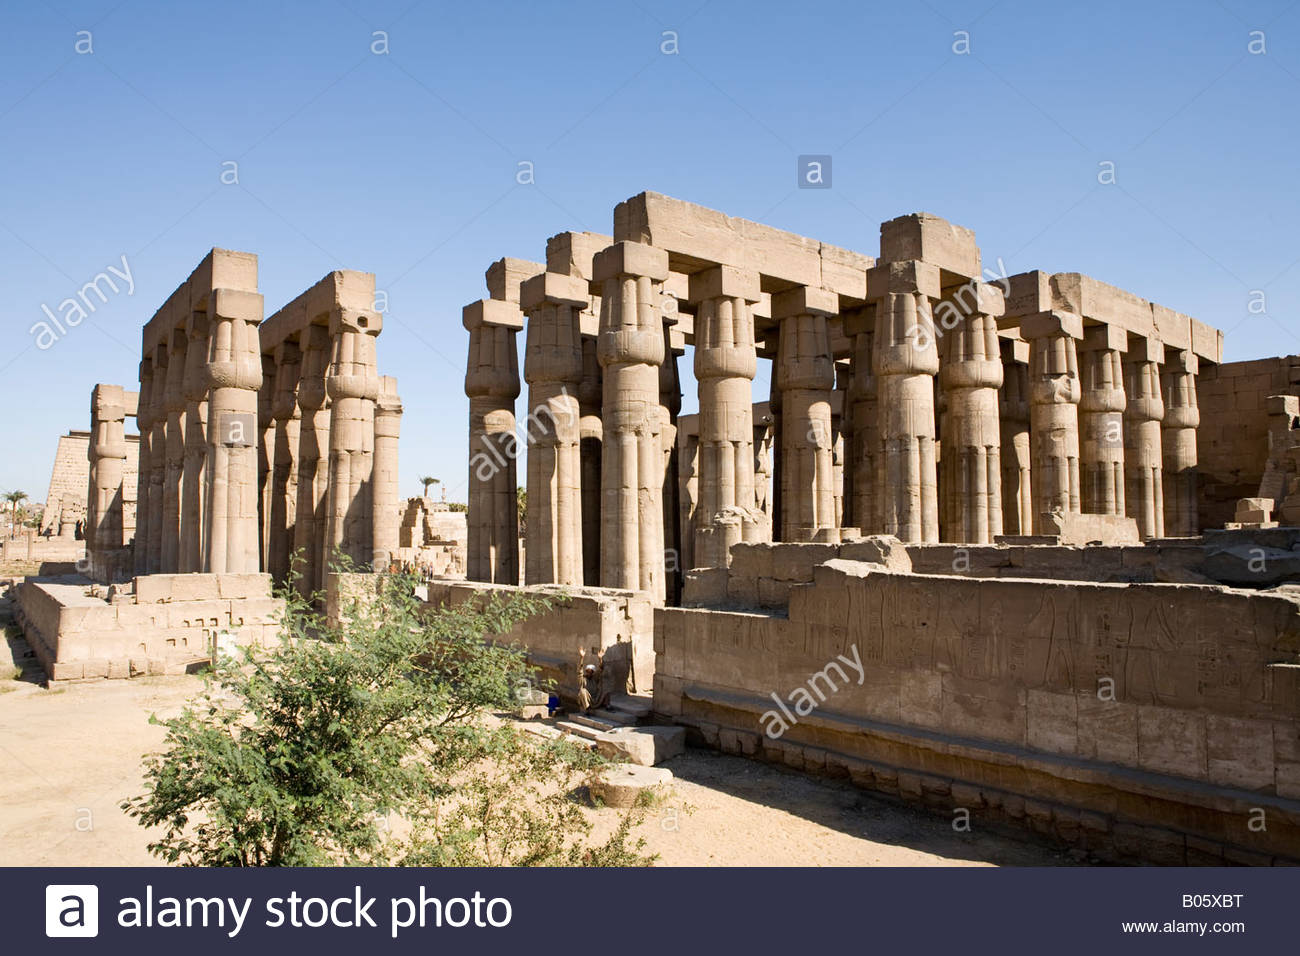 Palace of Amenhotep III Luxor, The Sun Court and Hypostyle Hall of Amenhotep III at Luxor Temple ...